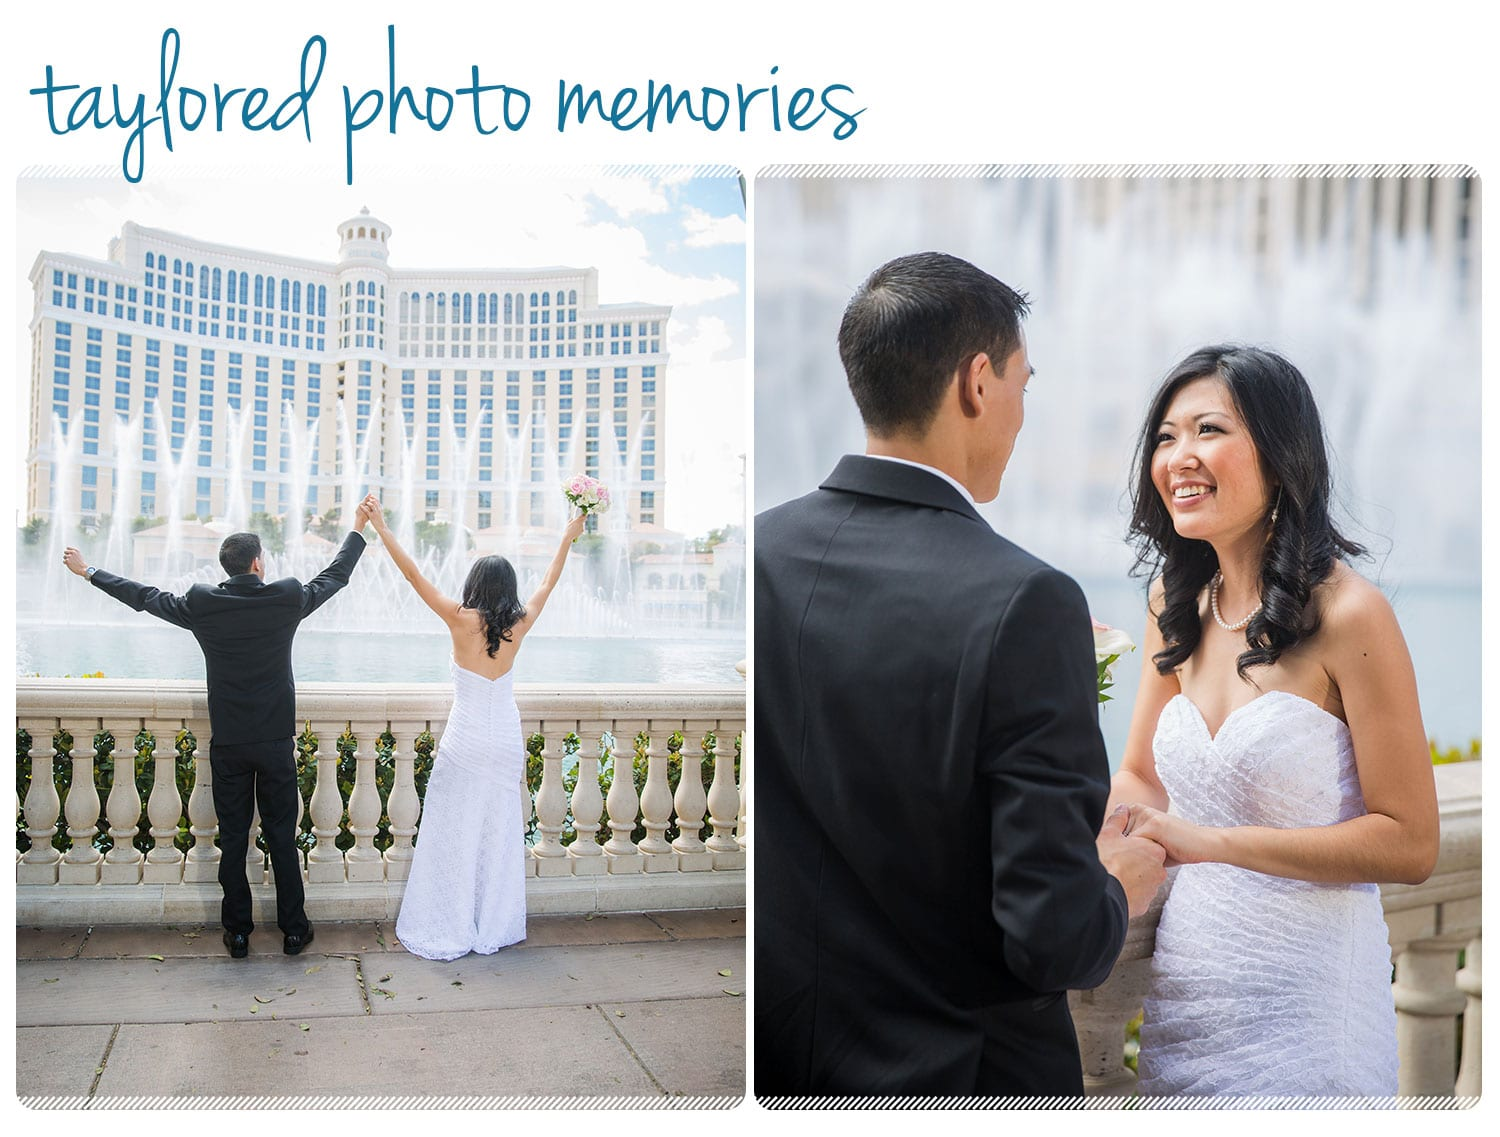 Couple from Hawaii chooses Las Vegas for their Destination Wedding. Strip Walking Tour -- Photos at Bellagio Fountains and Caesars Palace.